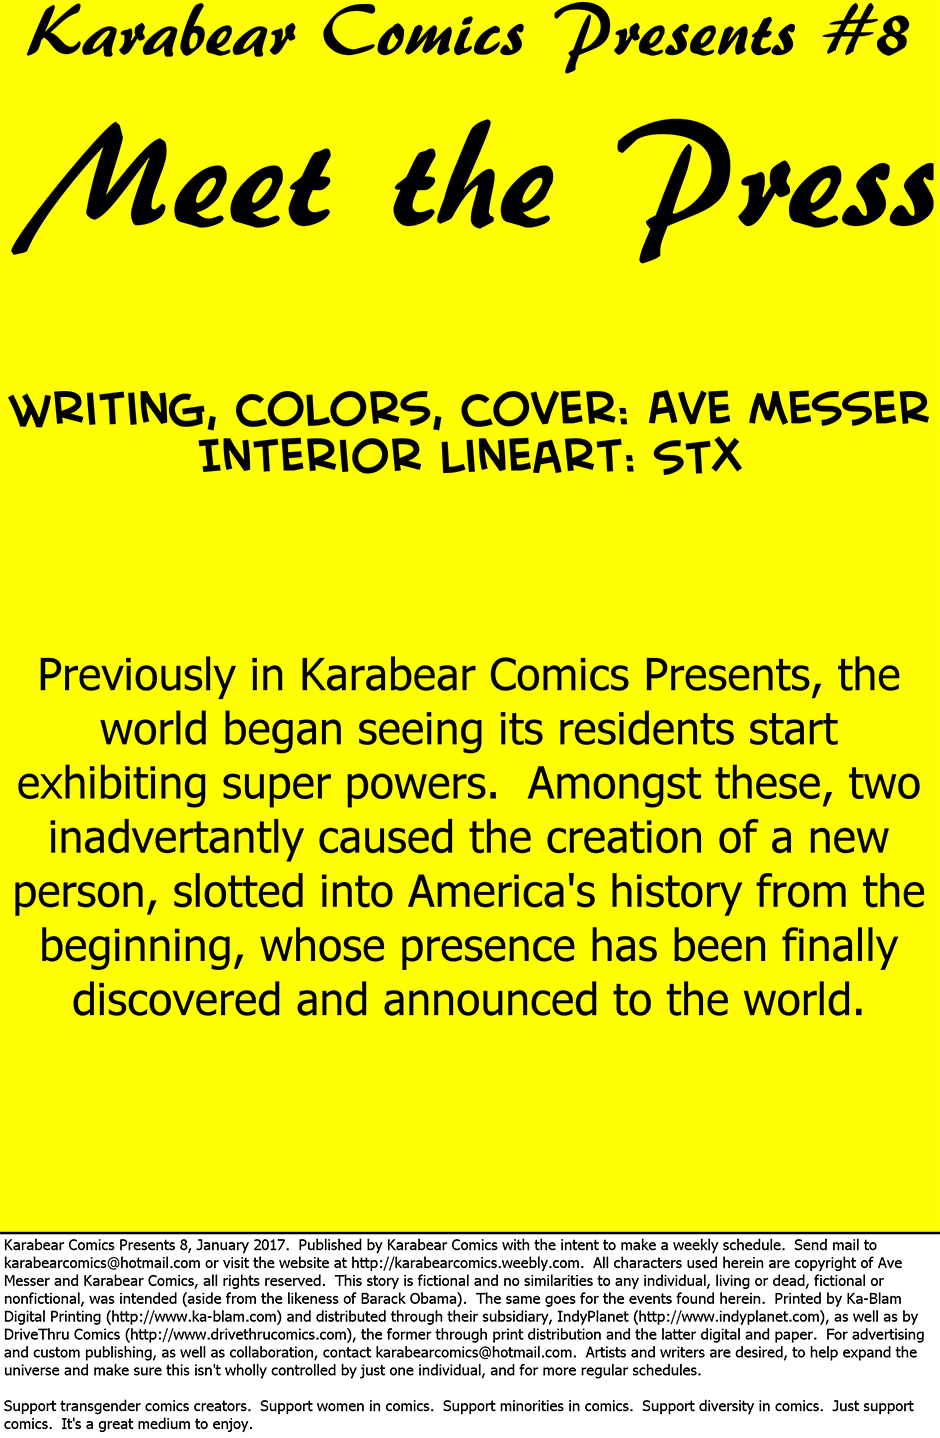 Issue 8: Meet the Press - Inside cover